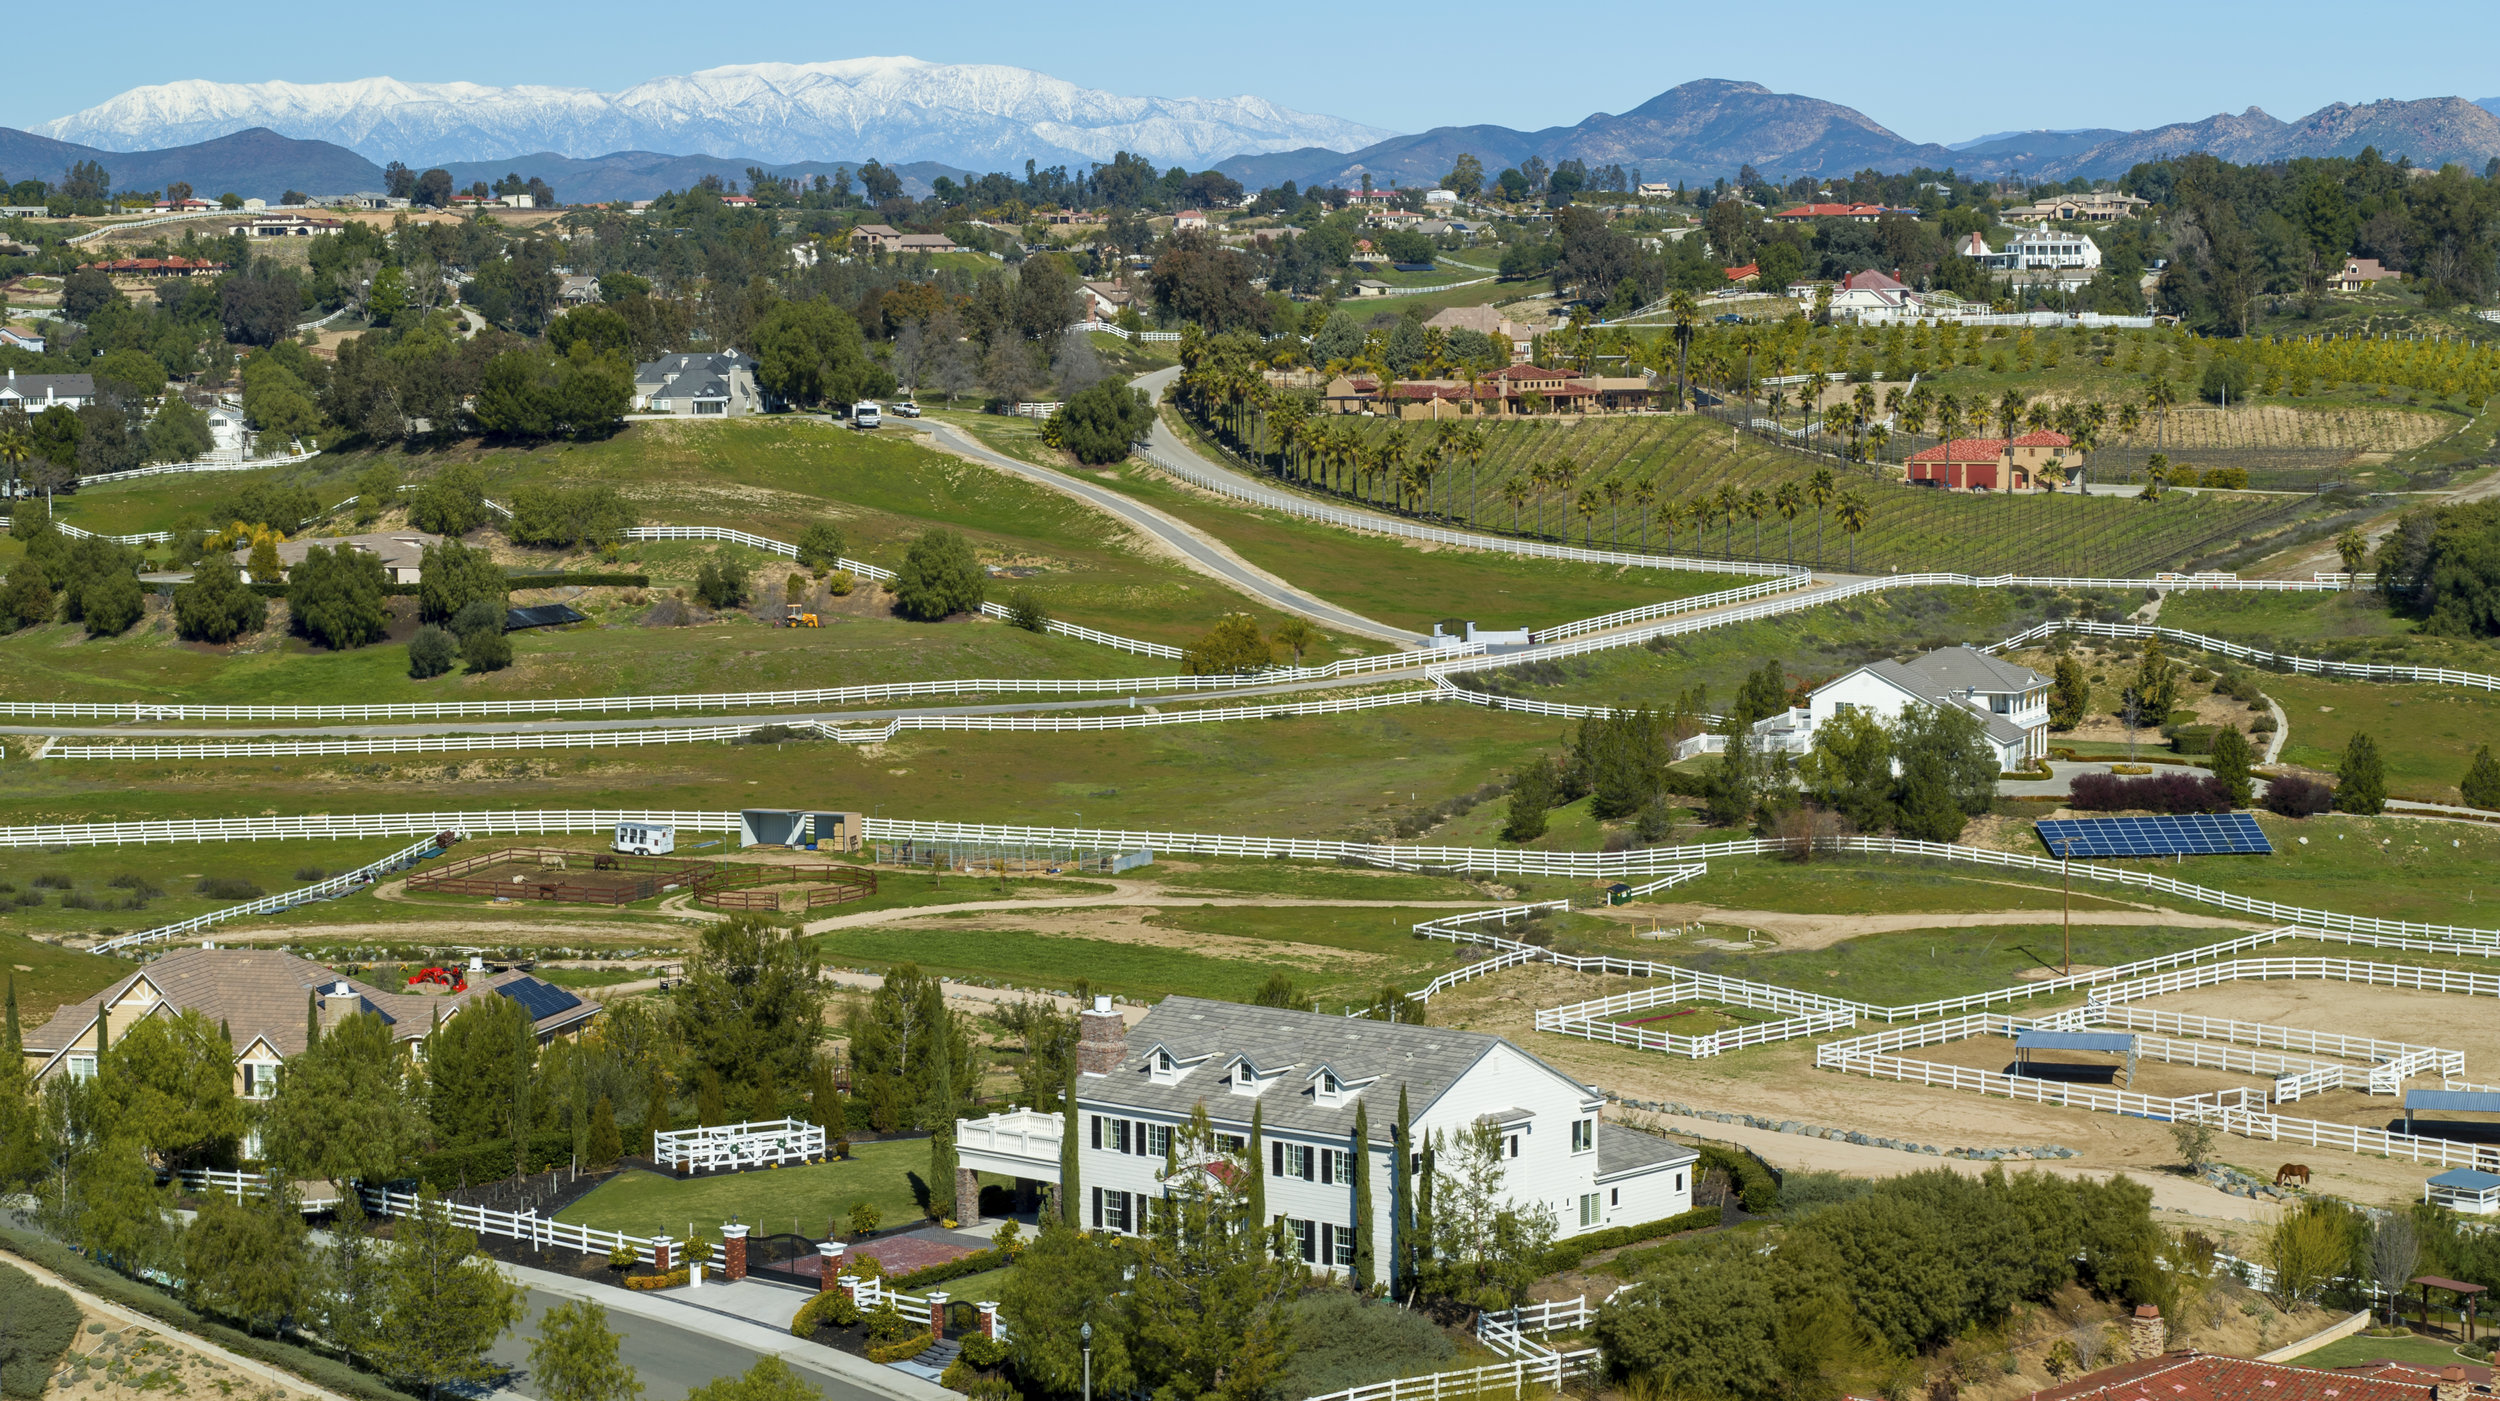 Equestrian estate in Temecula Valley